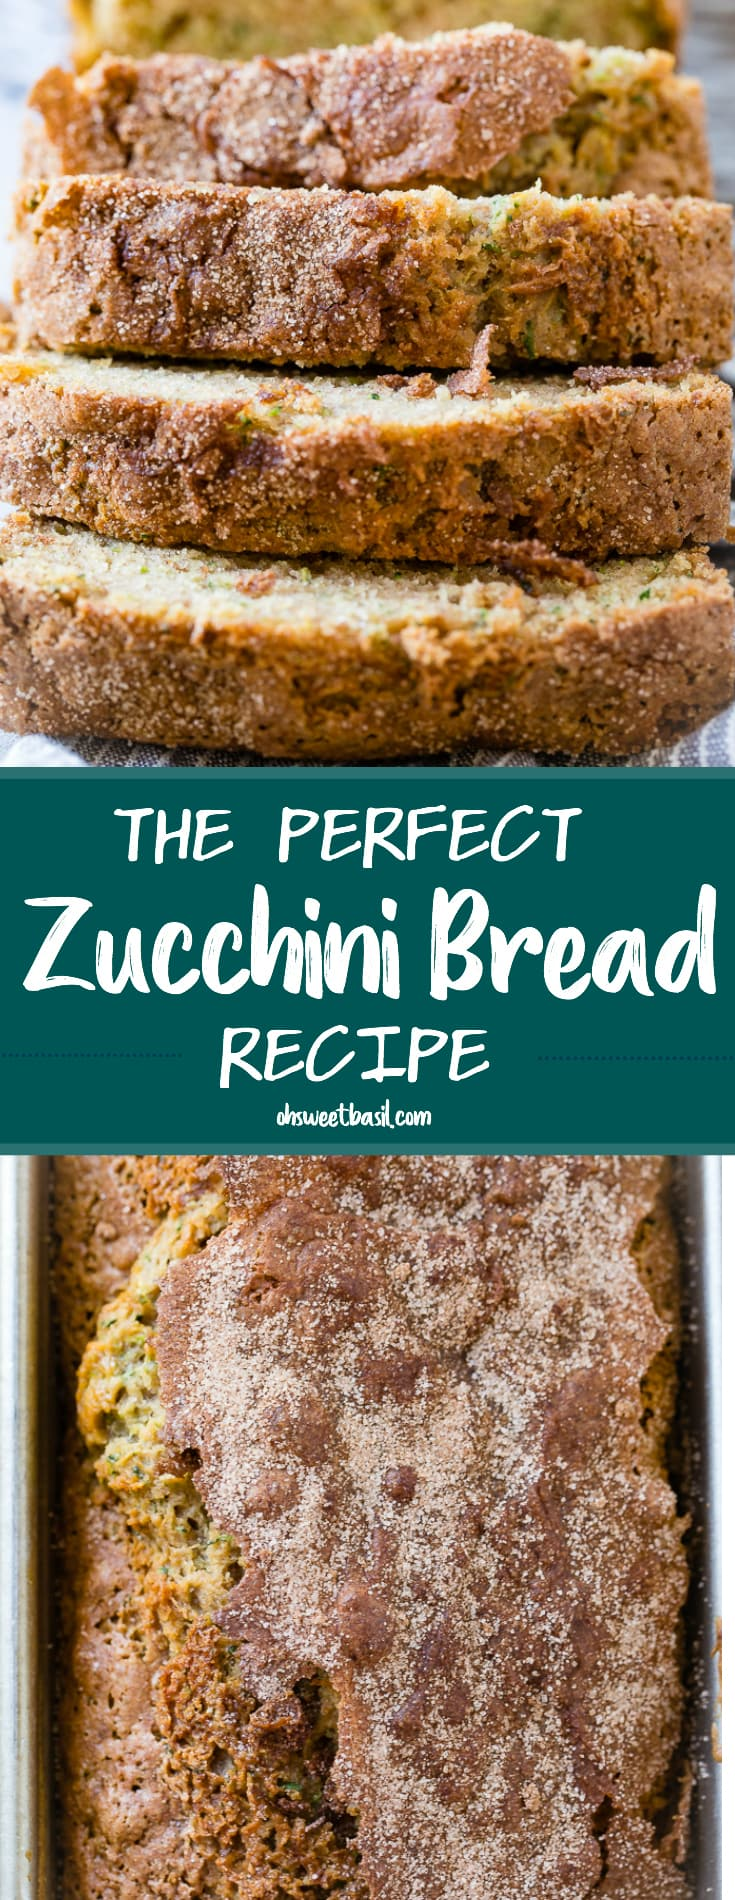 A close up of the best zucchini bread recipe with cinnamon sugar topping